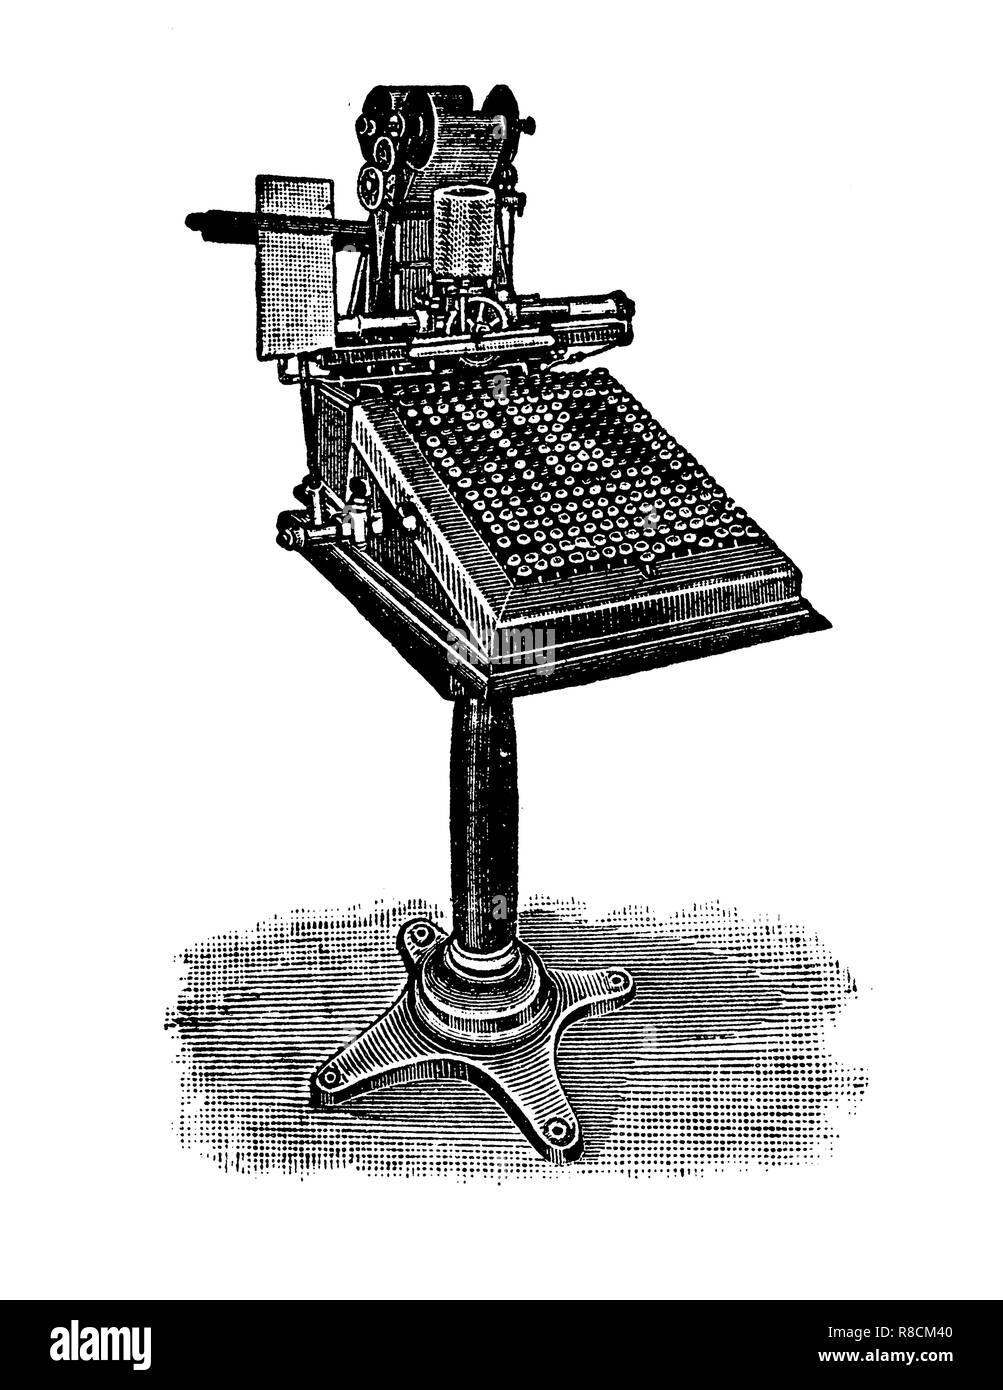 Vintage engraving of monotype keyboard printing machine communicated with the caster machine by perforated tape from the text entered on the keyboard. - Stock Image